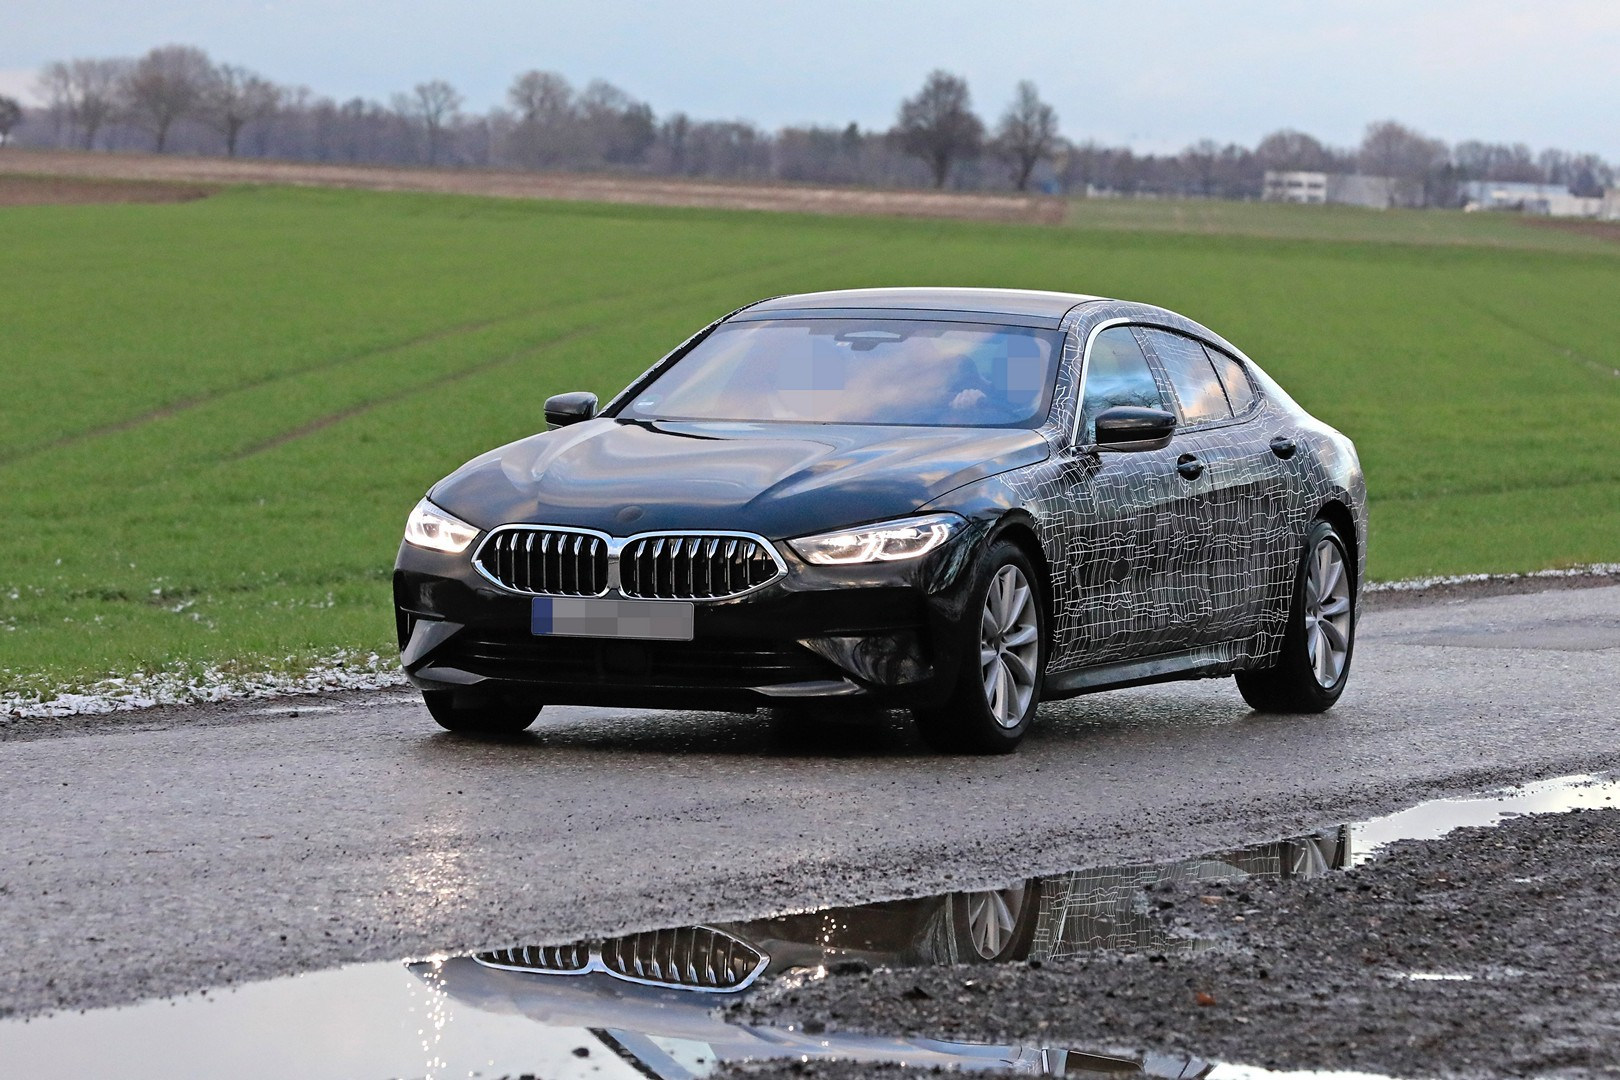 2020 bmw 8 series gran coupe looks boring in latest spyshots autoevolution. Black Bedroom Furniture Sets. Home Design Ideas